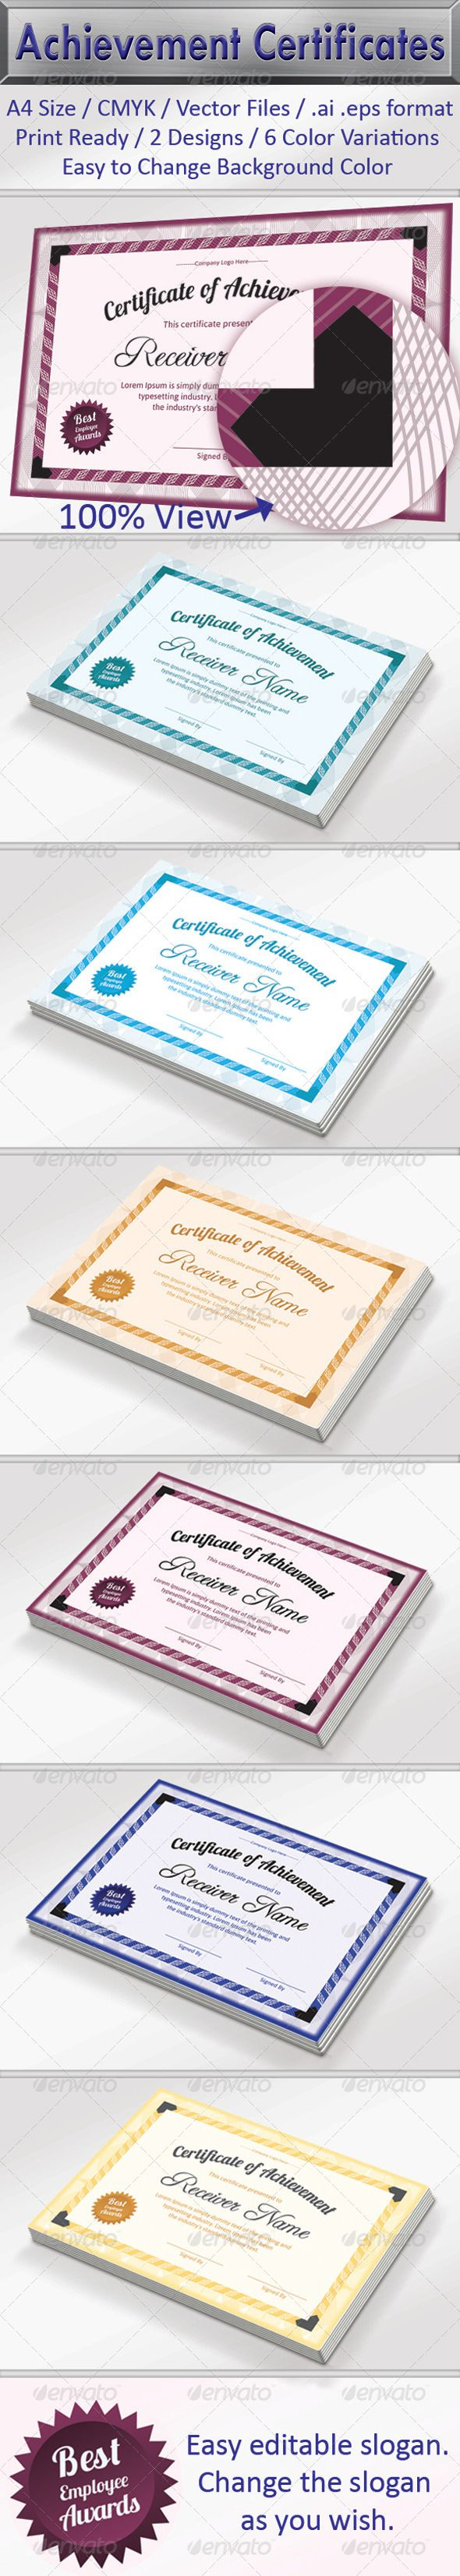 """Achievement Certificate Pack #GraphicRiver Editable Fonts Editable Colours Editable Vector Files Ready for Printing Size: A4 with 3mm or 0.125"""" Bleed 2 Designs with 6 Different Colours Color Mode: CMYK Layer: Yes, it have separate layers. Files included in main folder: .ai, .eps, Help file.pdf Free Fonts used Lobster 1.3 Regular ( .fontsquirrel /fonts/Lobster), Asap Regular ( .fontsquirrel /fonts/asap) , Freebooter Script Regular ( .fontsquirrel /fonts/Freebooter-Script) Created: 6 December…"""